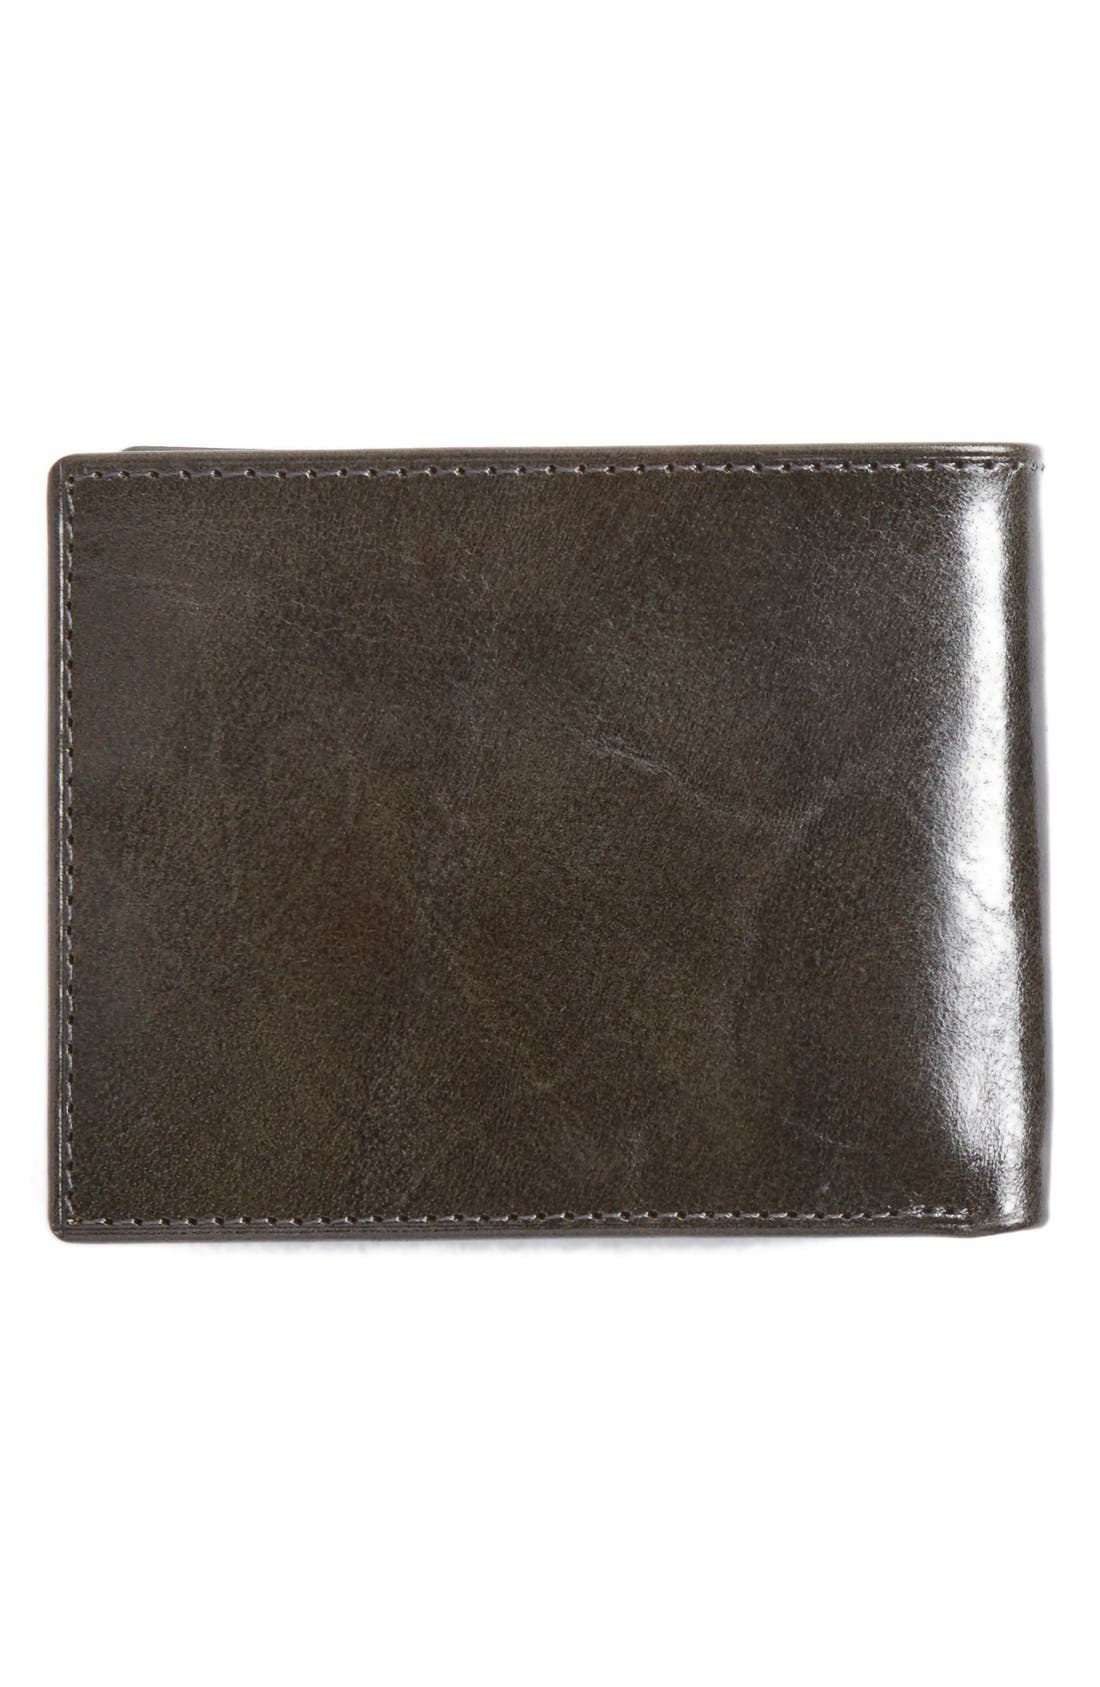 Flip Billfold Leather Wallet,                             Alternate thumbnail 4, color,                             020